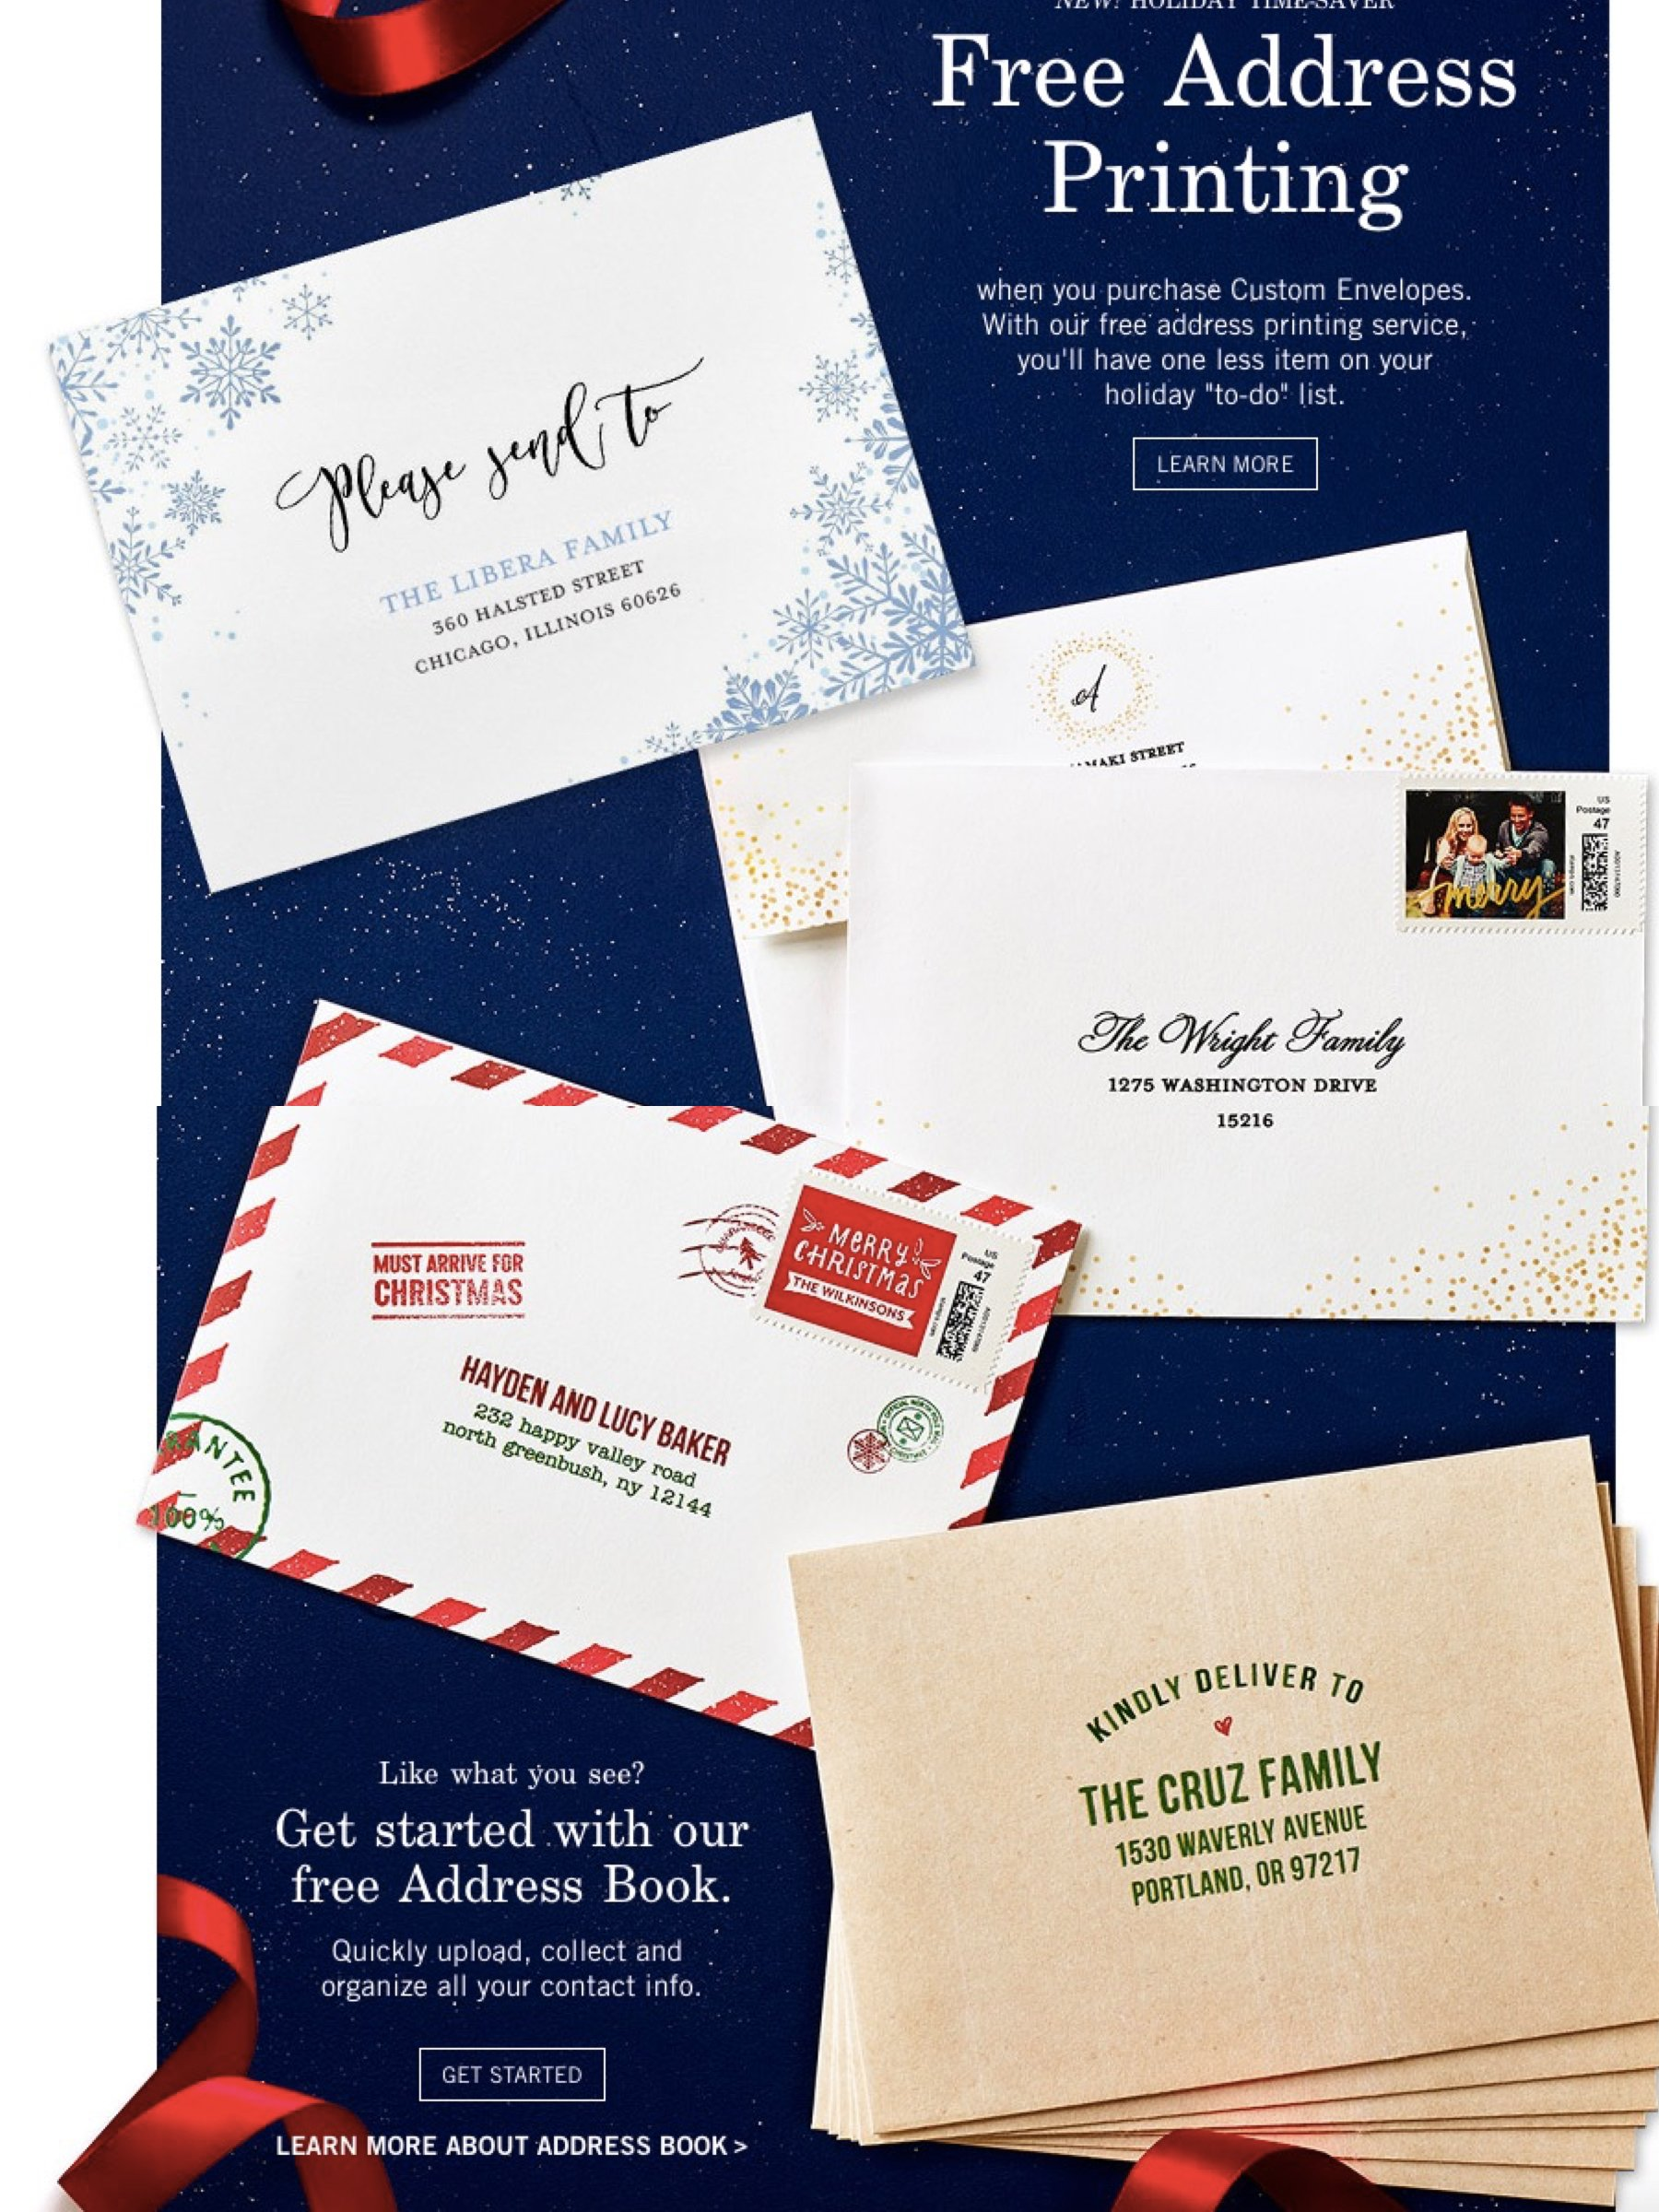 It's Holiday Card Time Free Address Printing for Holiday Cards